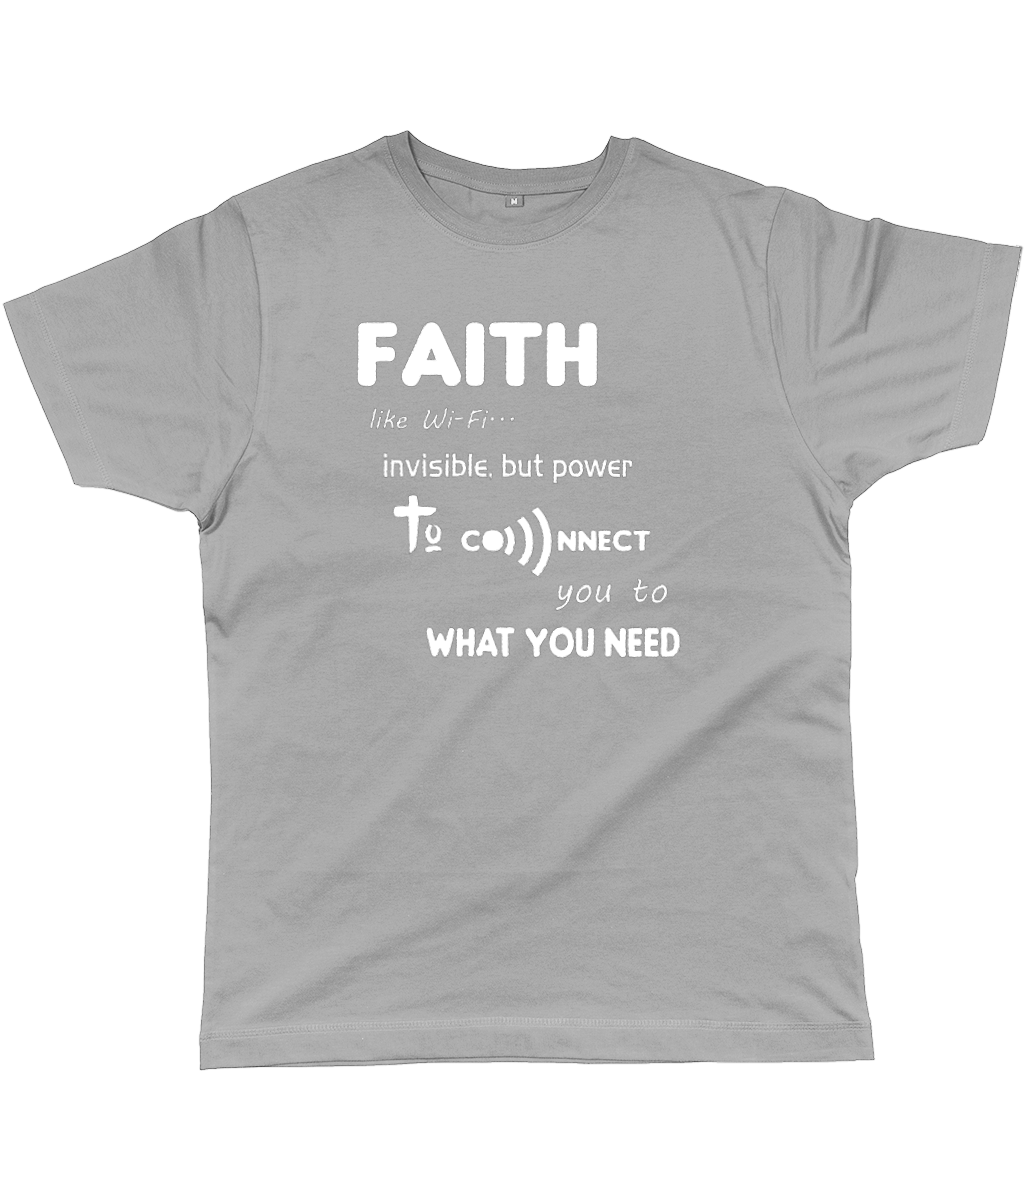 Faith Like Wifi Funny Christian Quote on a Unisex Light Grey T-Shirt